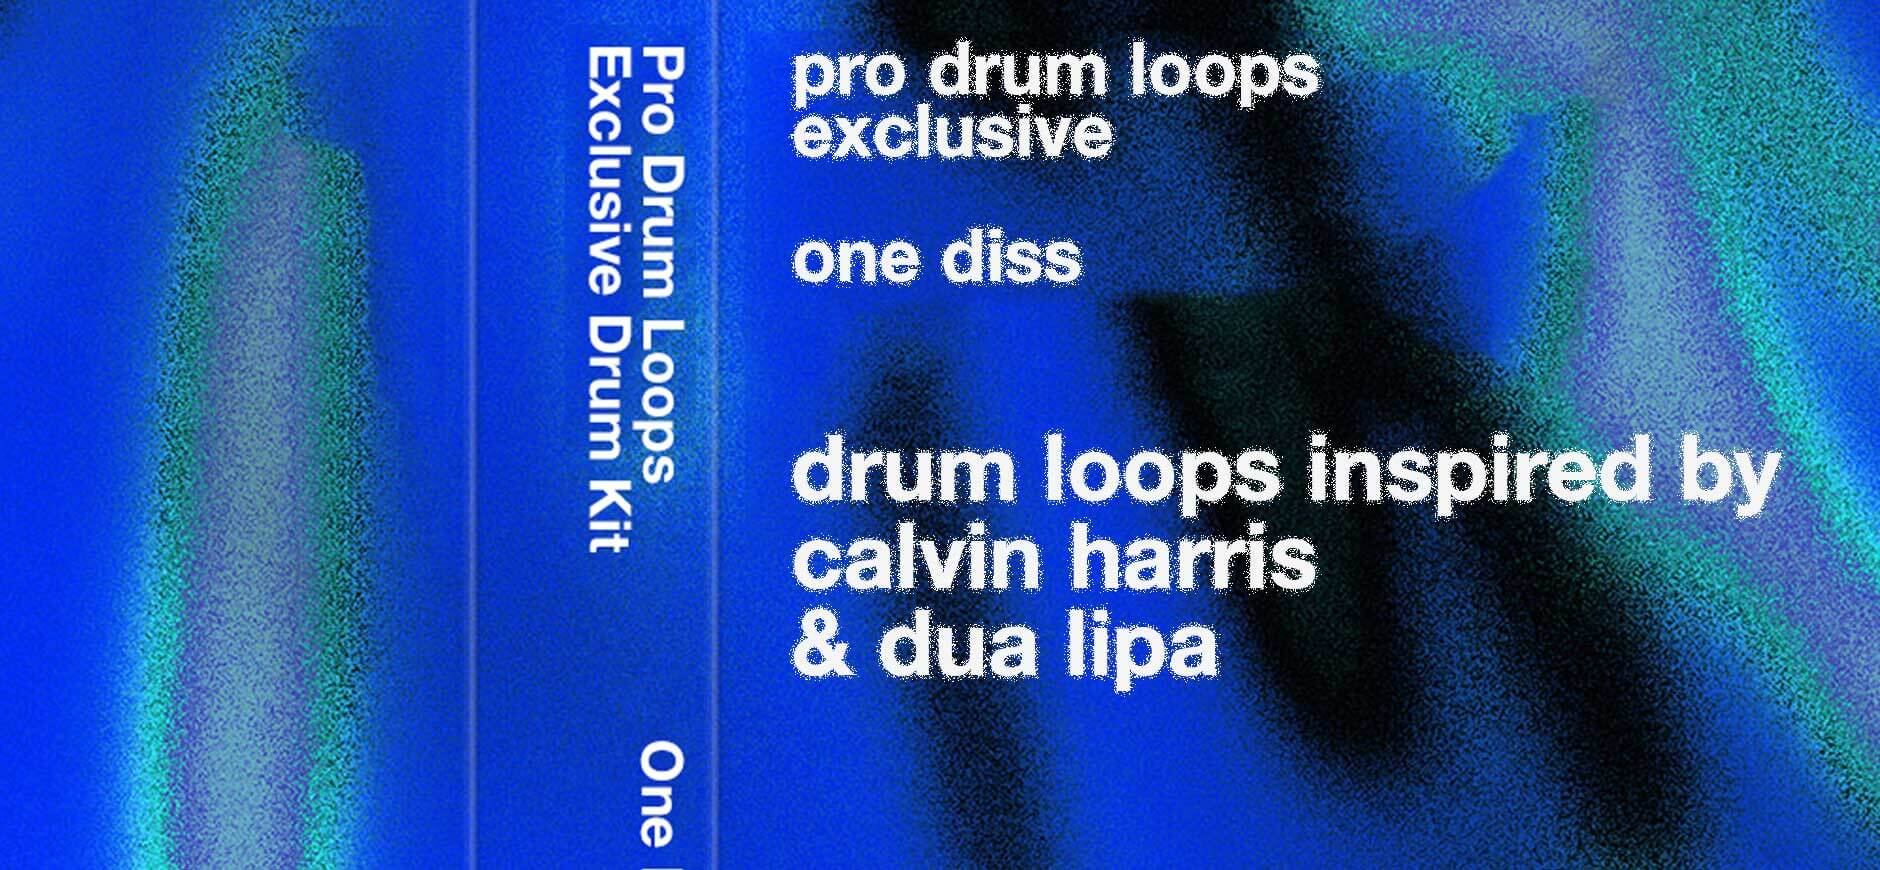 One Kiss Drum Loops Kit Inspired by Calvin Harris & Dua Lipa